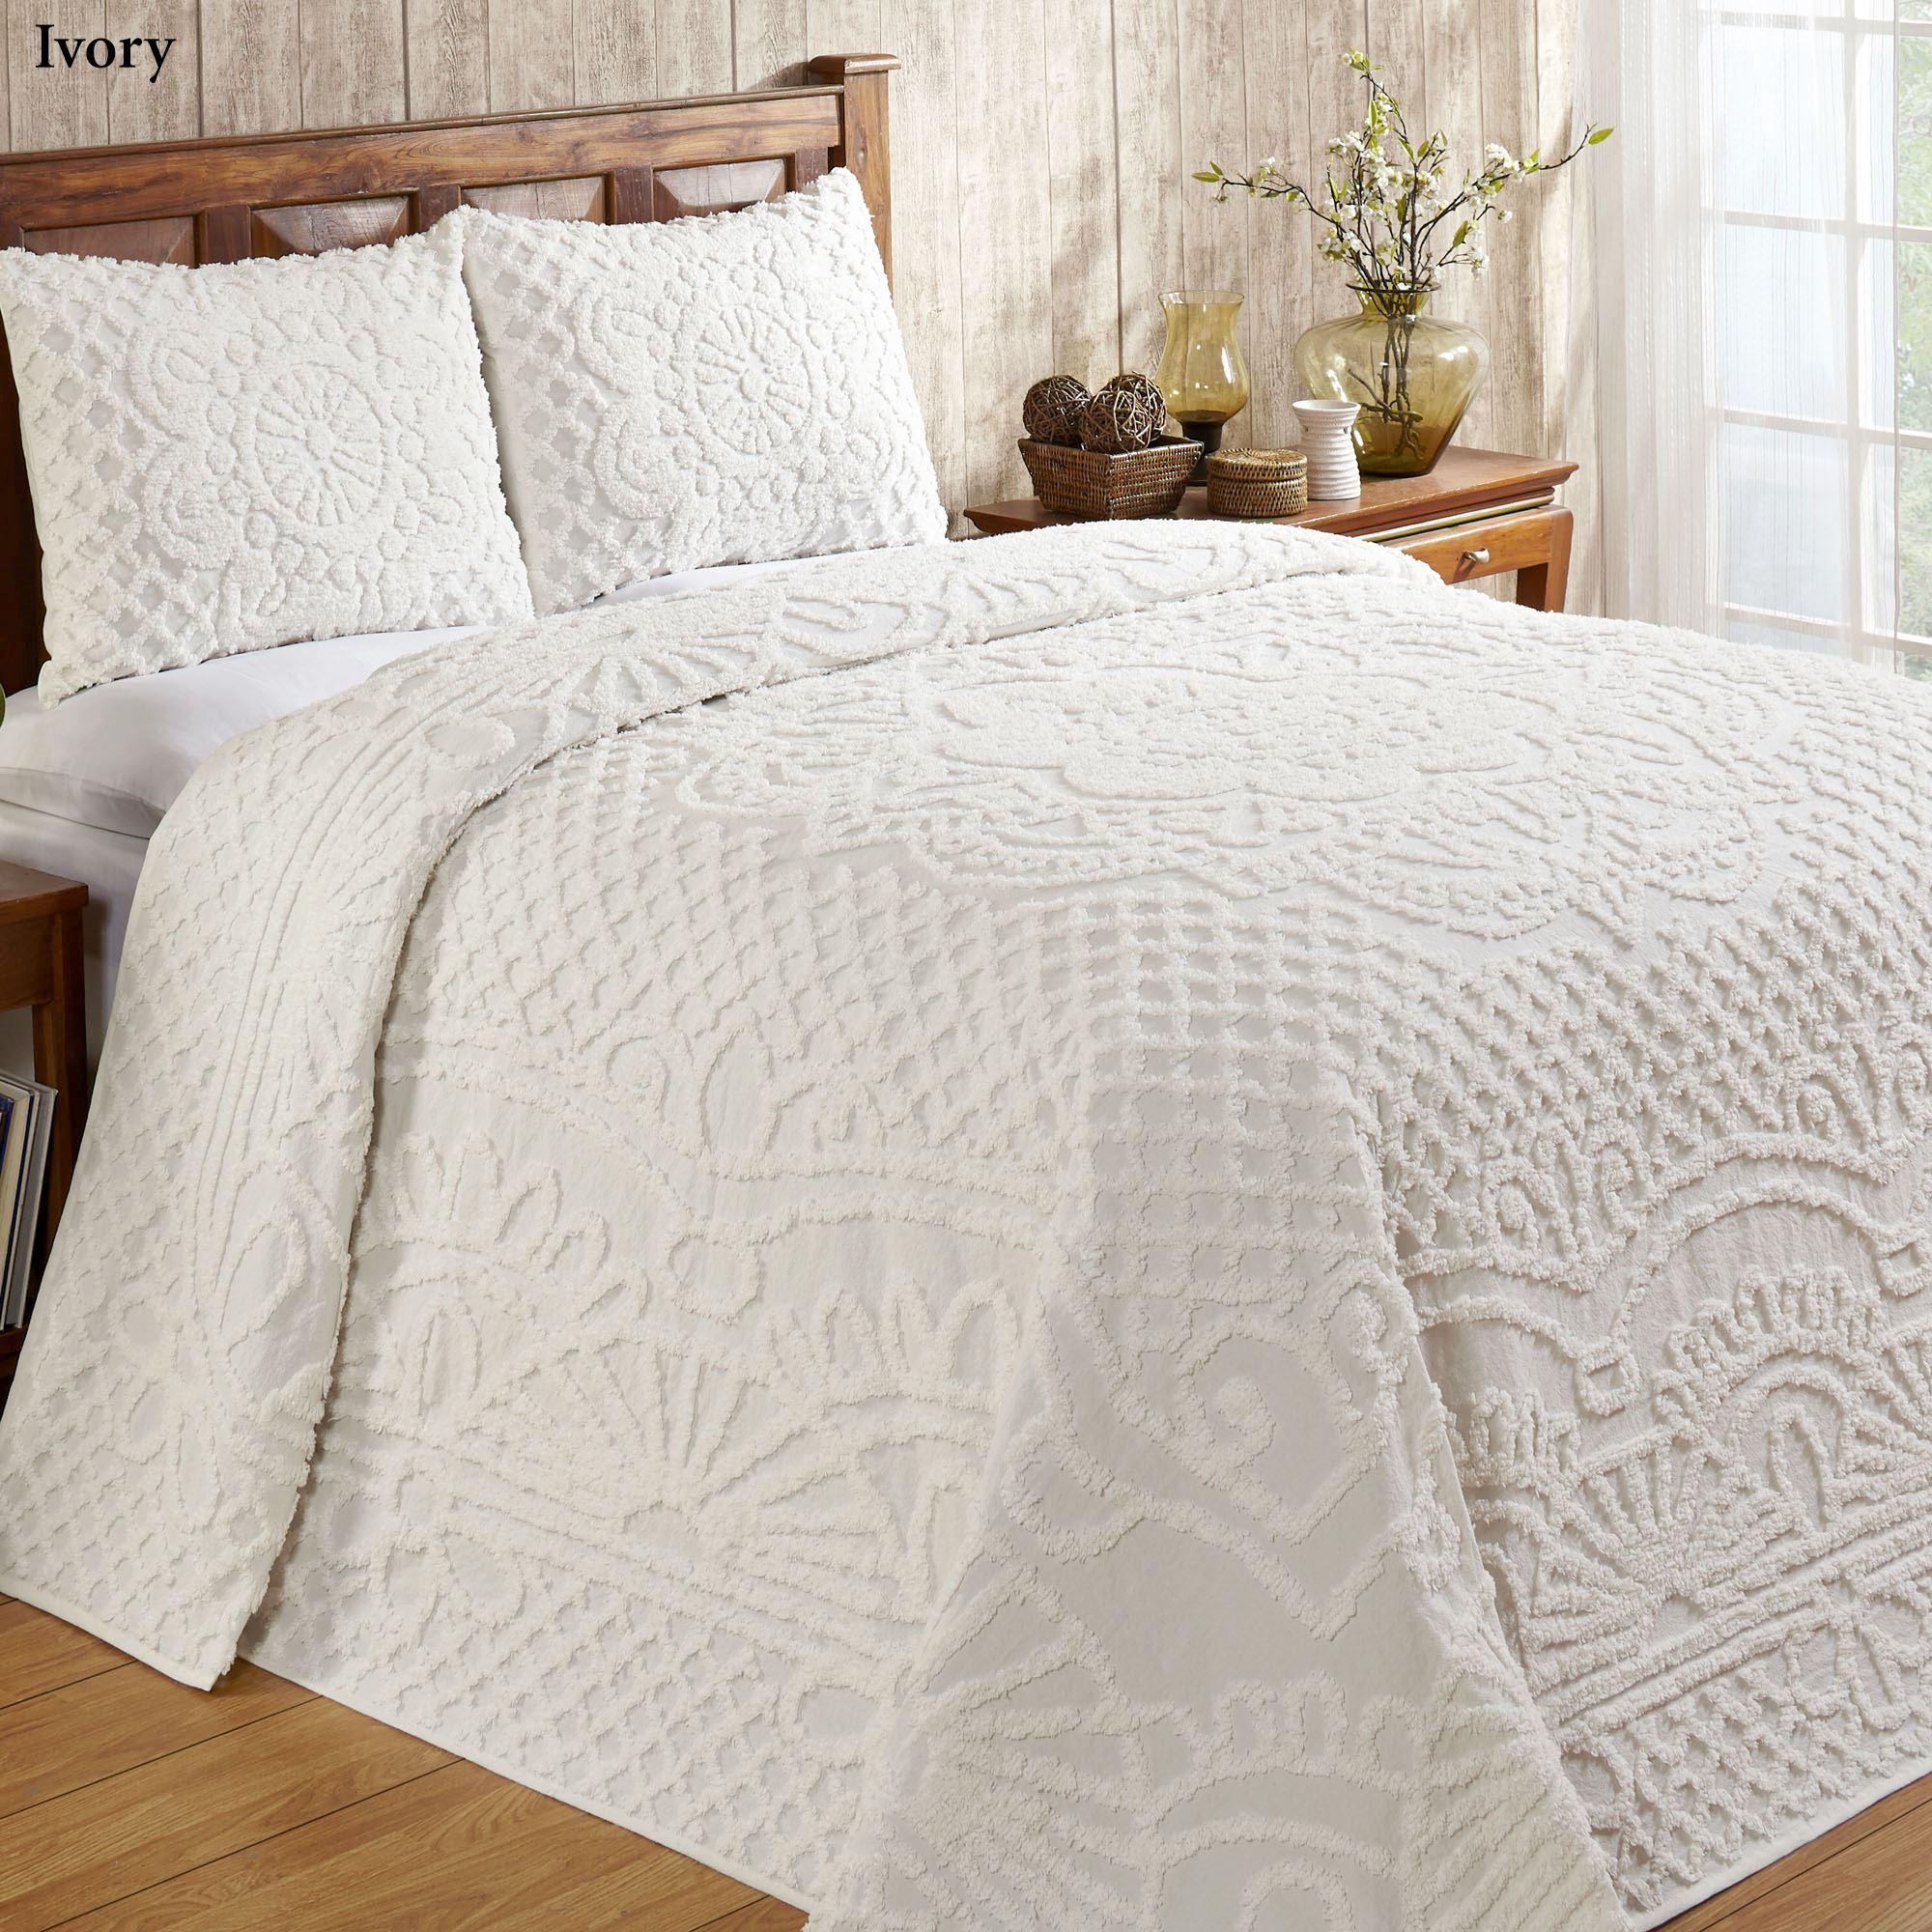 quality comforter blue coral set light bed nice piece sets tufted white